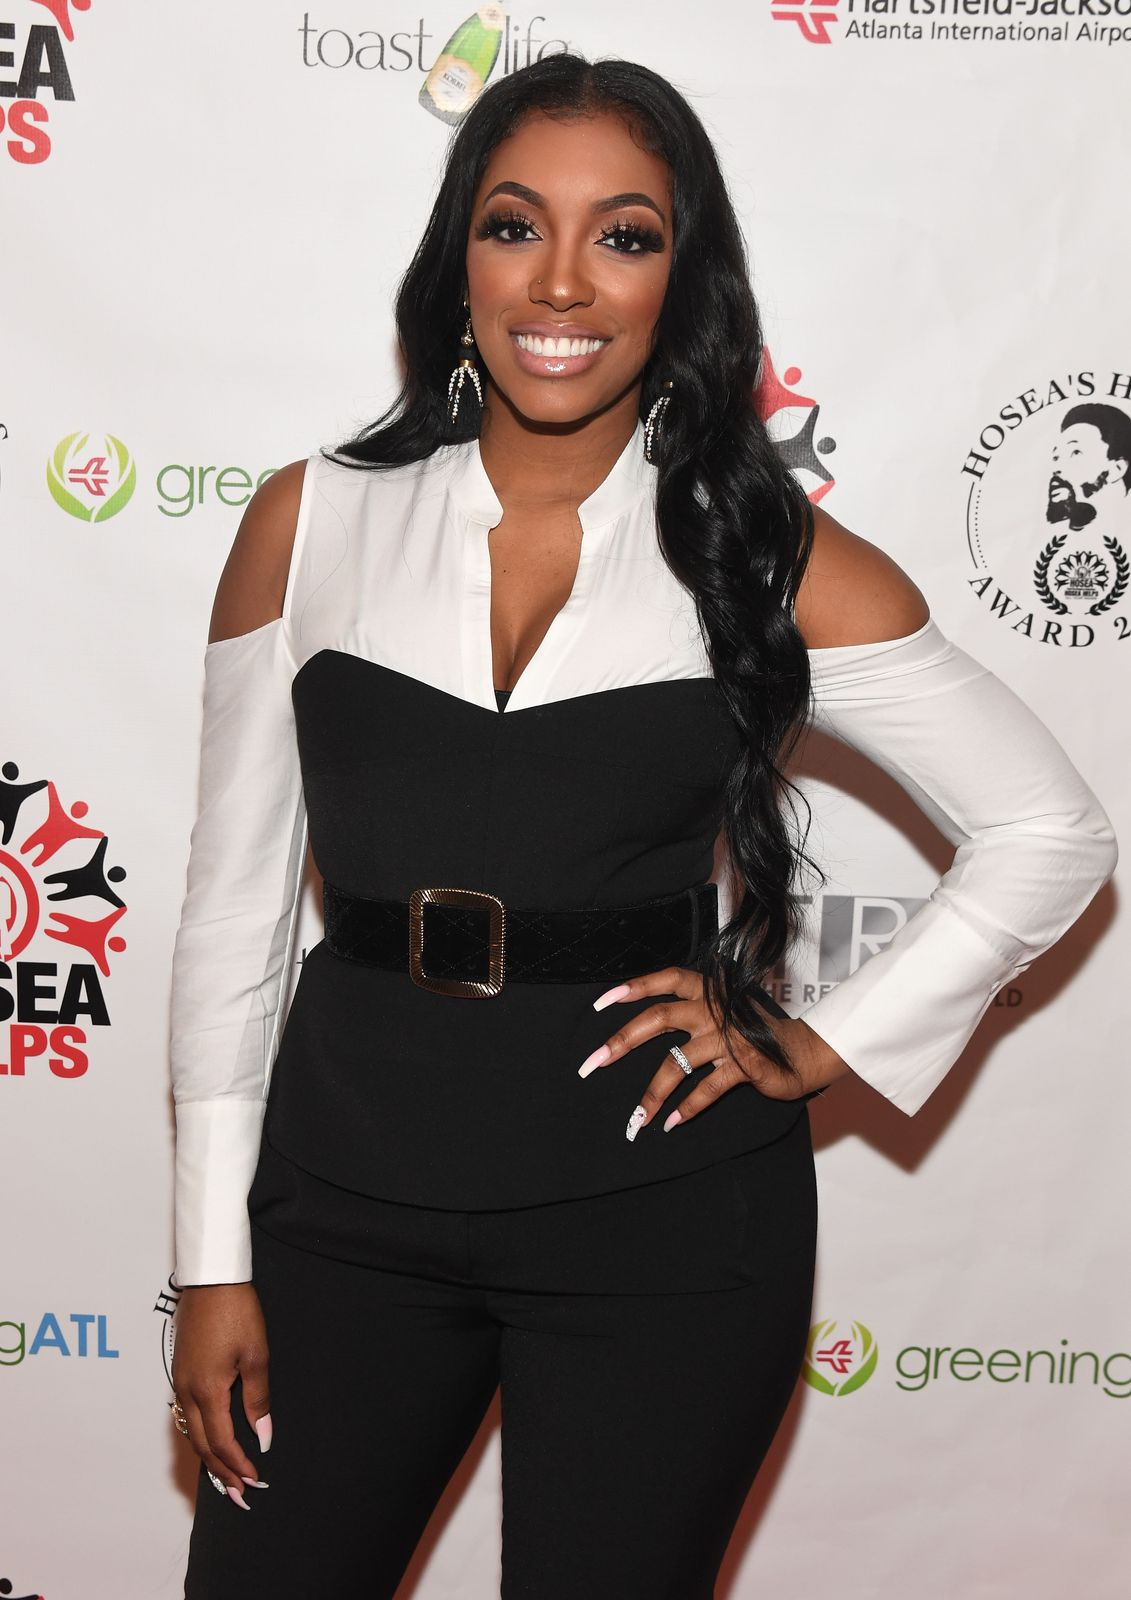 Porsha Williams at the 2018 Hosea's Heroes Awards at Loudermilk Conference Center on February 25, 2018 in Atlanta, Georgia | Photo: Getty Images